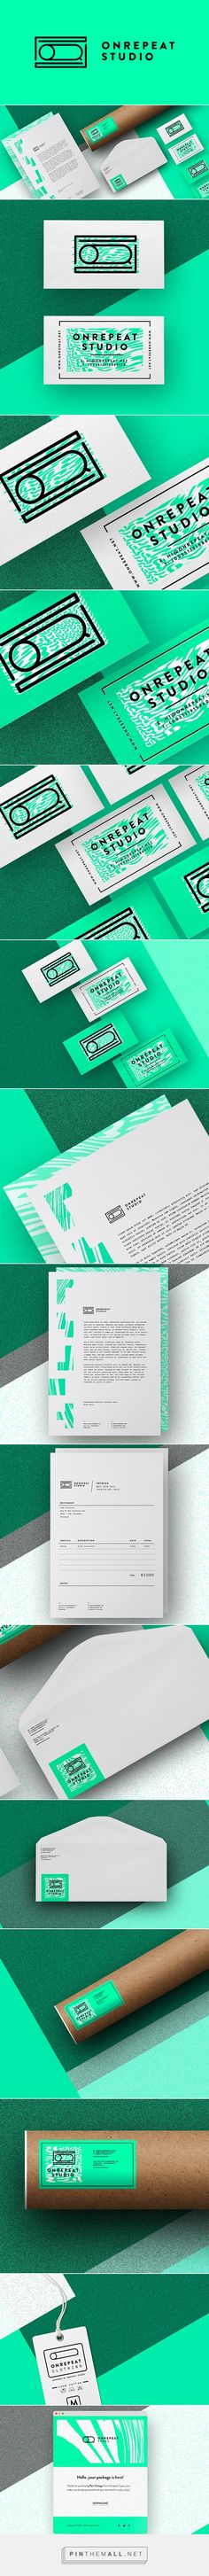 Fivestar Branding Agency – Business Branding and Web Design for Small Business Owners Web Design Agency, Brand Identity Design, Branding Design, Branding Ideas, Corporate Design, Corporate Identity, Editorial Design, Logo Inspiration, Self Branding